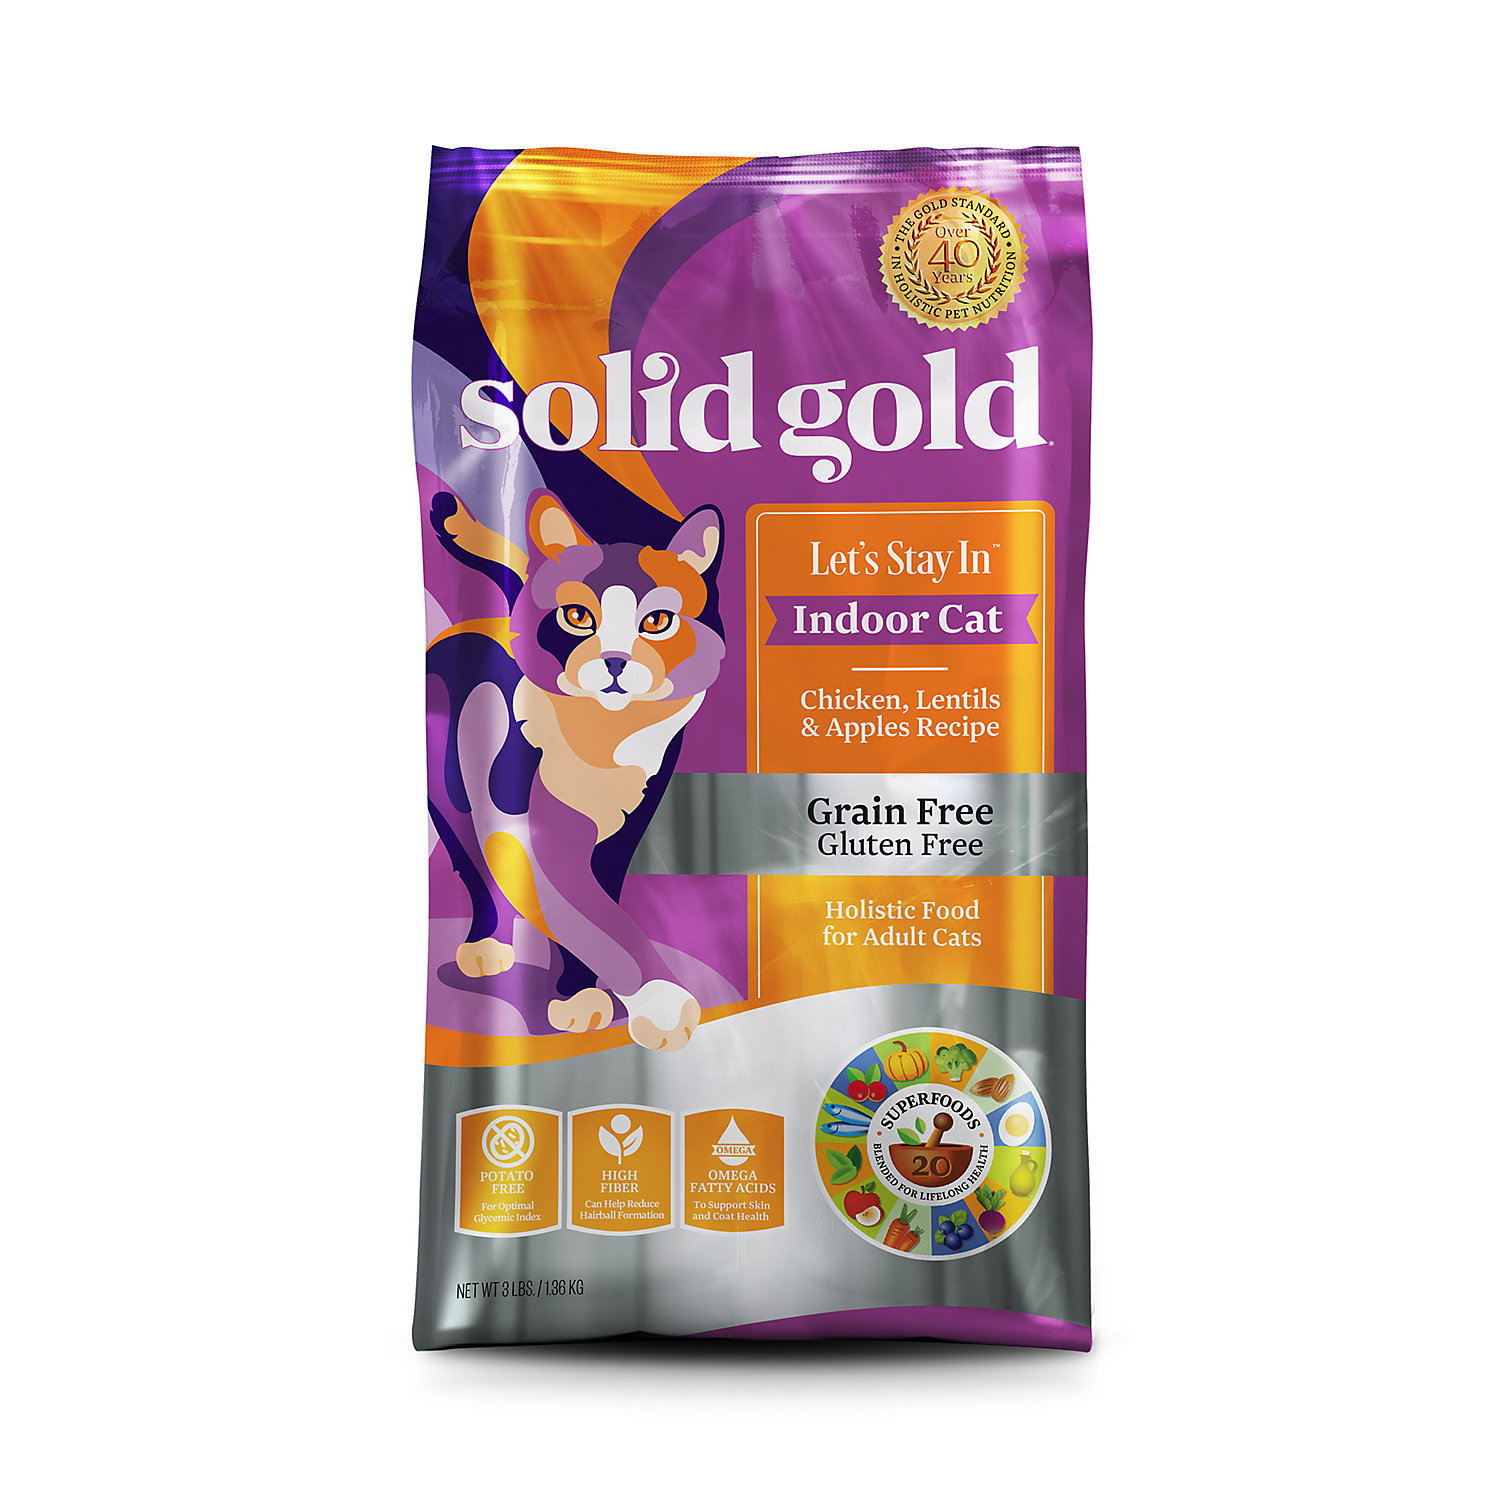 Solid Gold Let's Stay In Indoor Cat Chicken, Lentil & Apple Recipe for Adult Cat 3 lbs. (11/18) (A.J3)